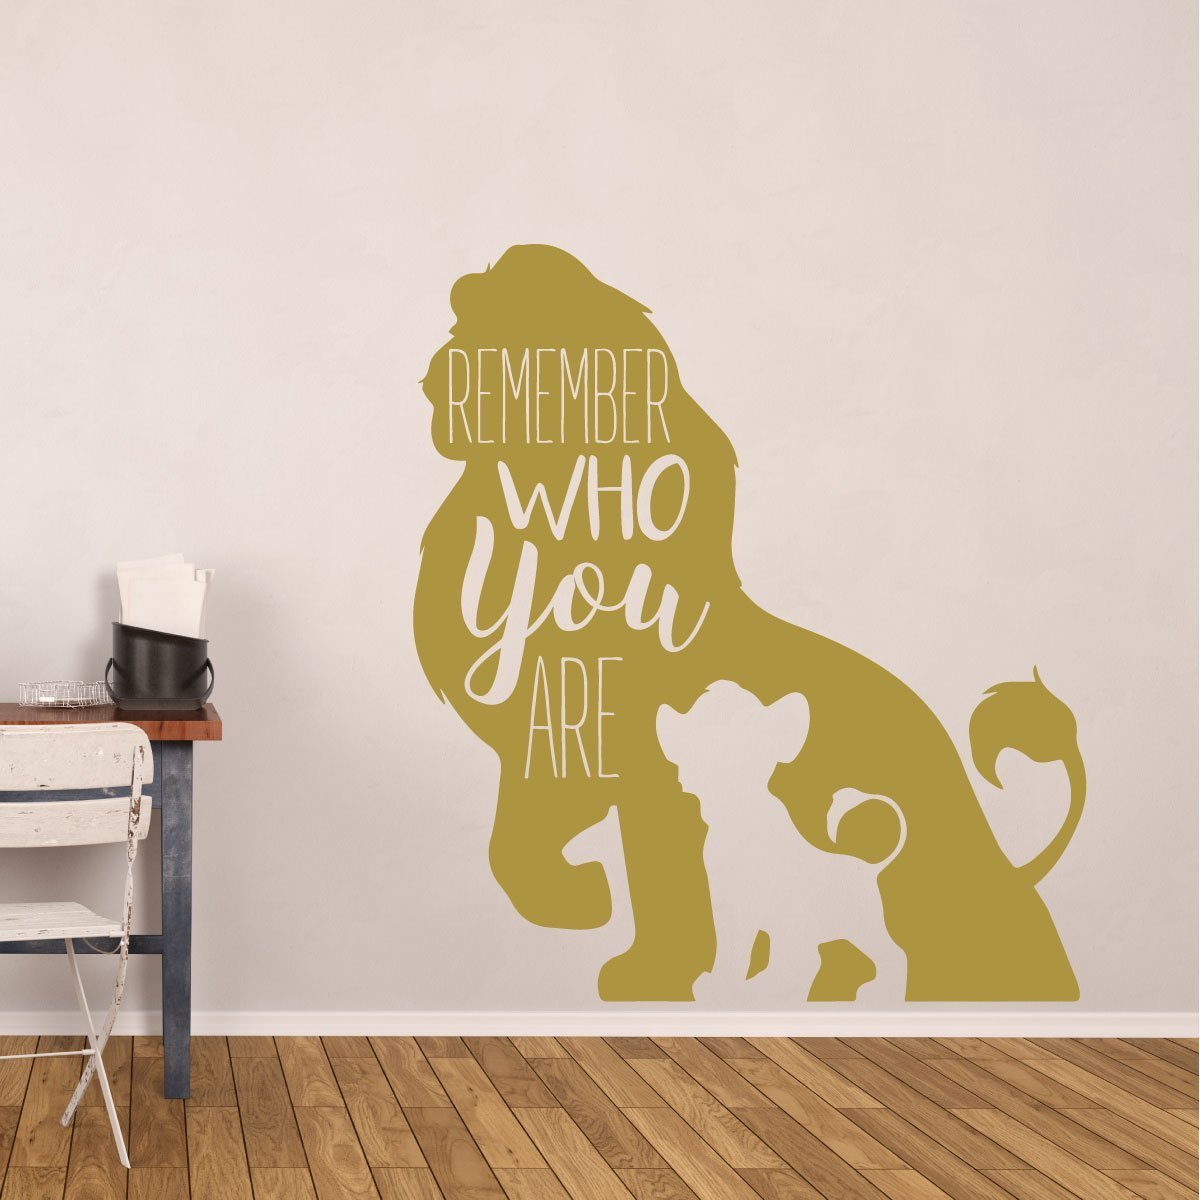 Generous Wall Decor Stickers South Africa Pictures Inspiration - The ...